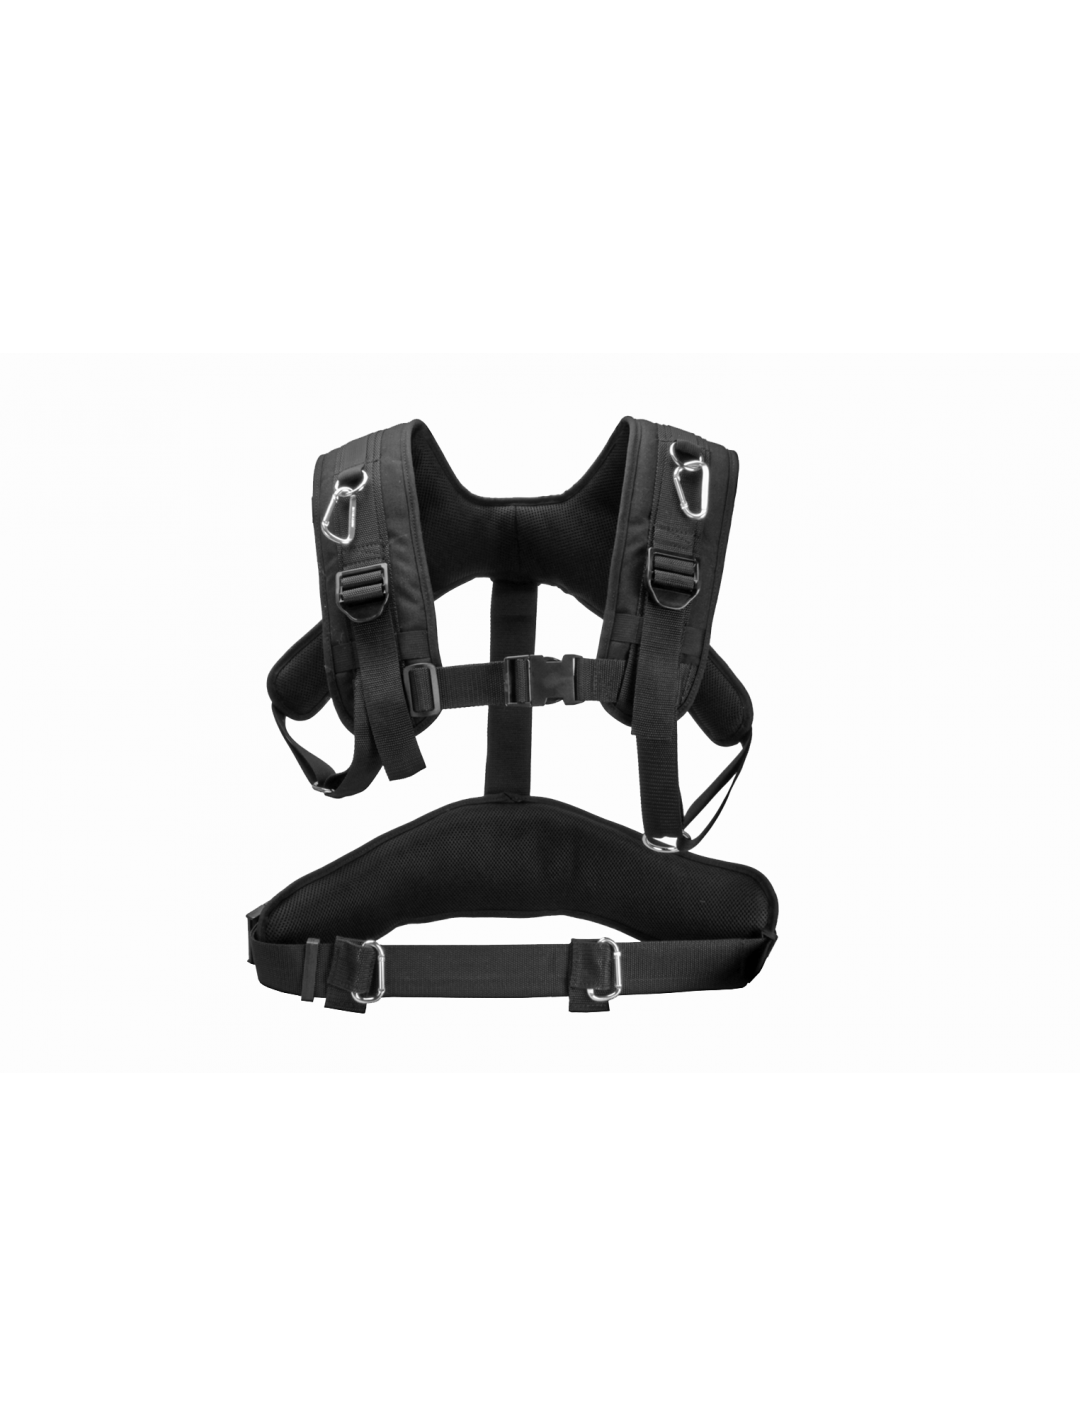 Porta Brace AH-2HB Audio Harness, Durable Nylon Straps, Black